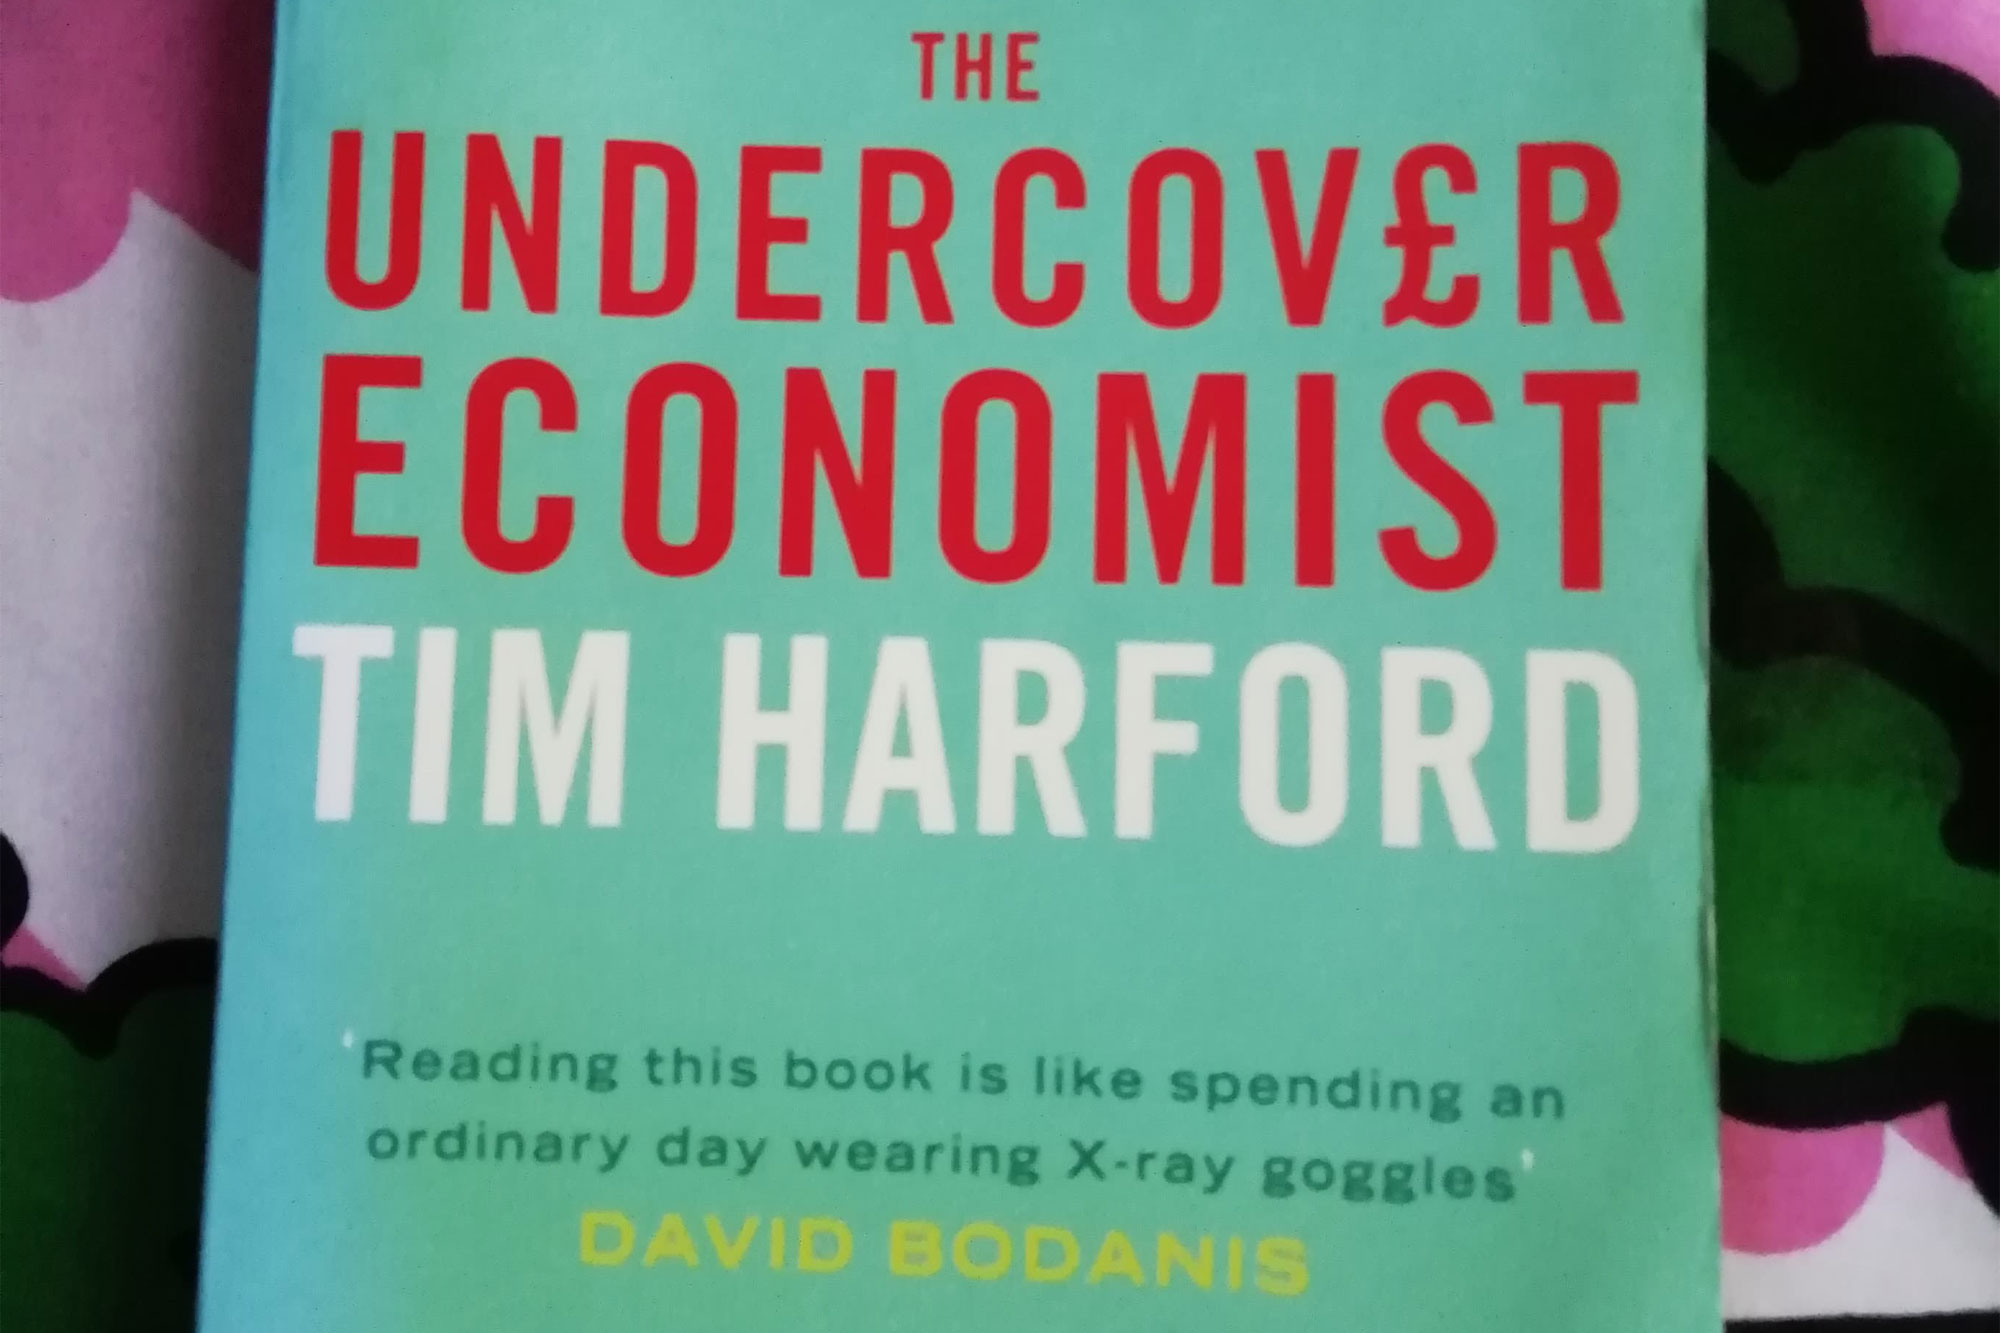 Undercover Economist: Exposing Why the Rich Are Rich, the Poor Are Poor - and Why You Can Never Buy a Decent Used Car! by Tim Harford (cropped)